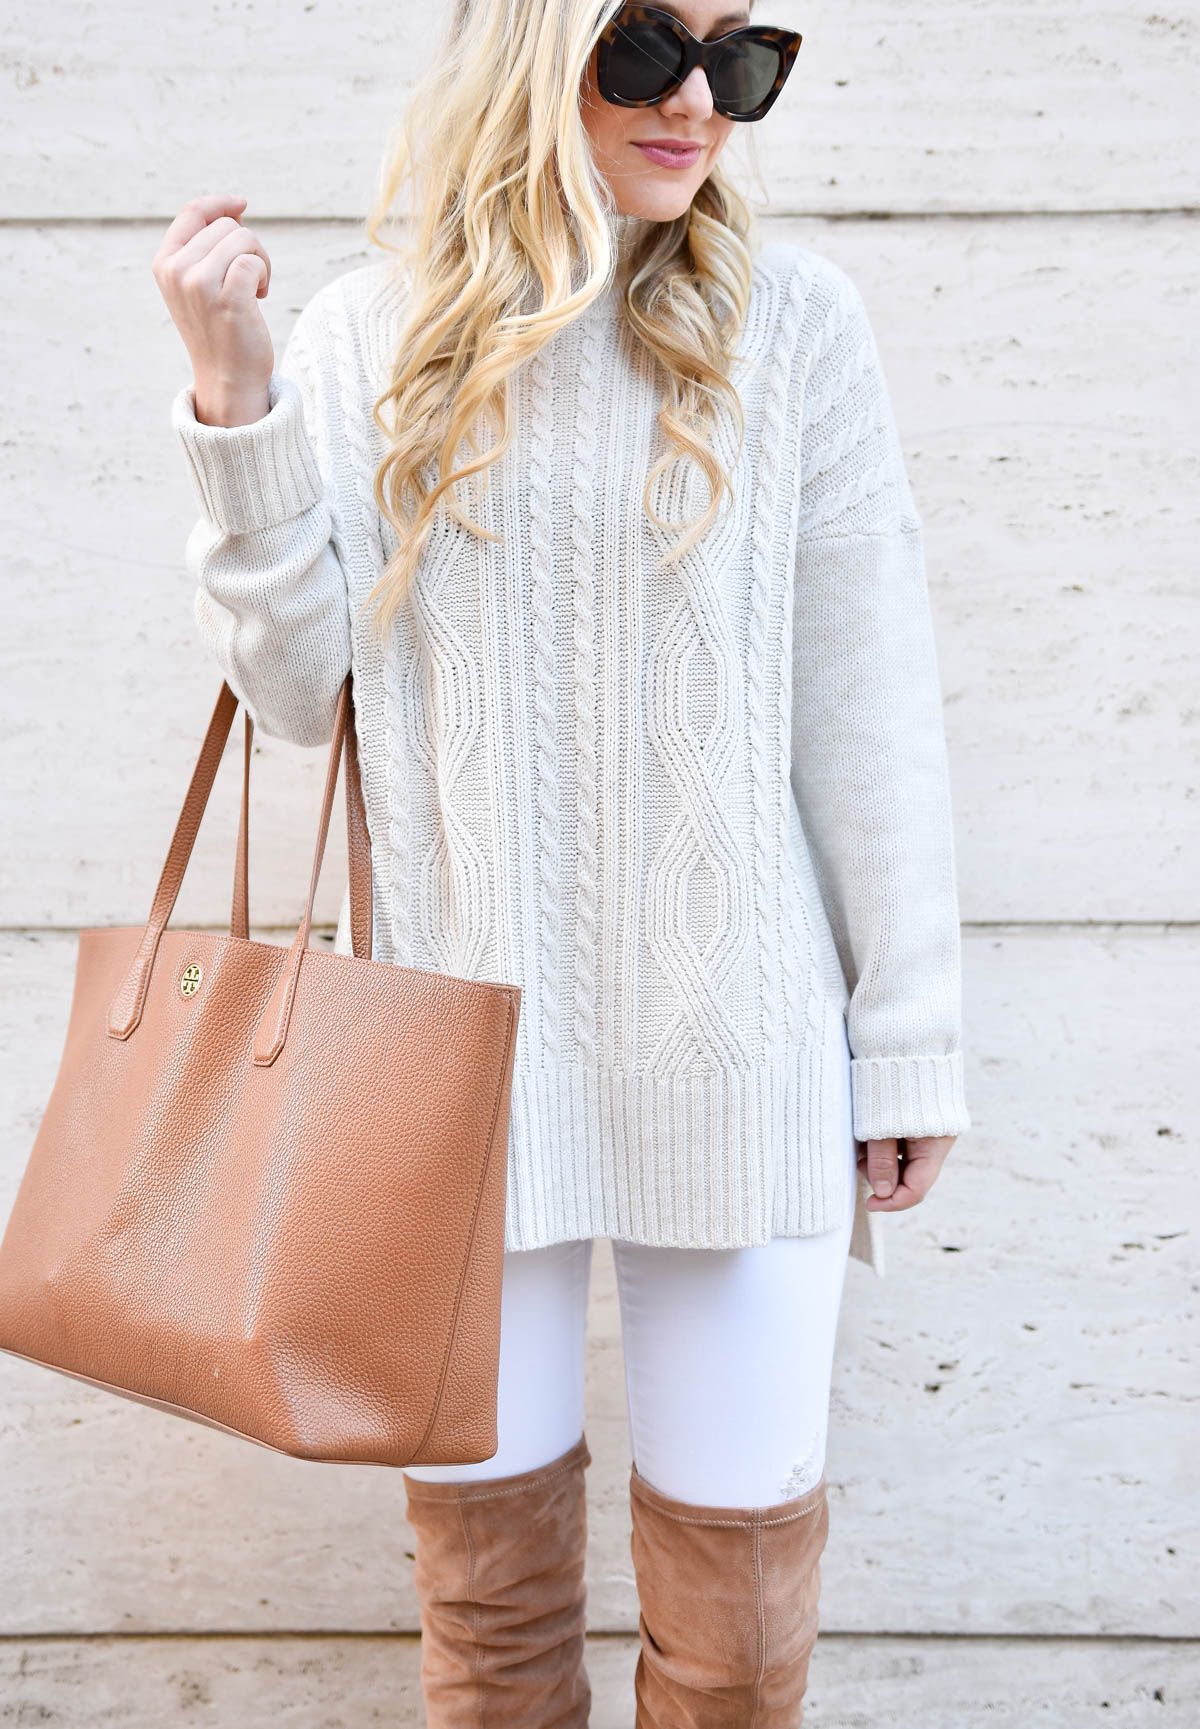 White-Cable-Knit-Sweater, White-Jeans, Tory-Burch-tote, Over-the-knee-boots, Nordstrom-sweater, Nordstrom-Womens